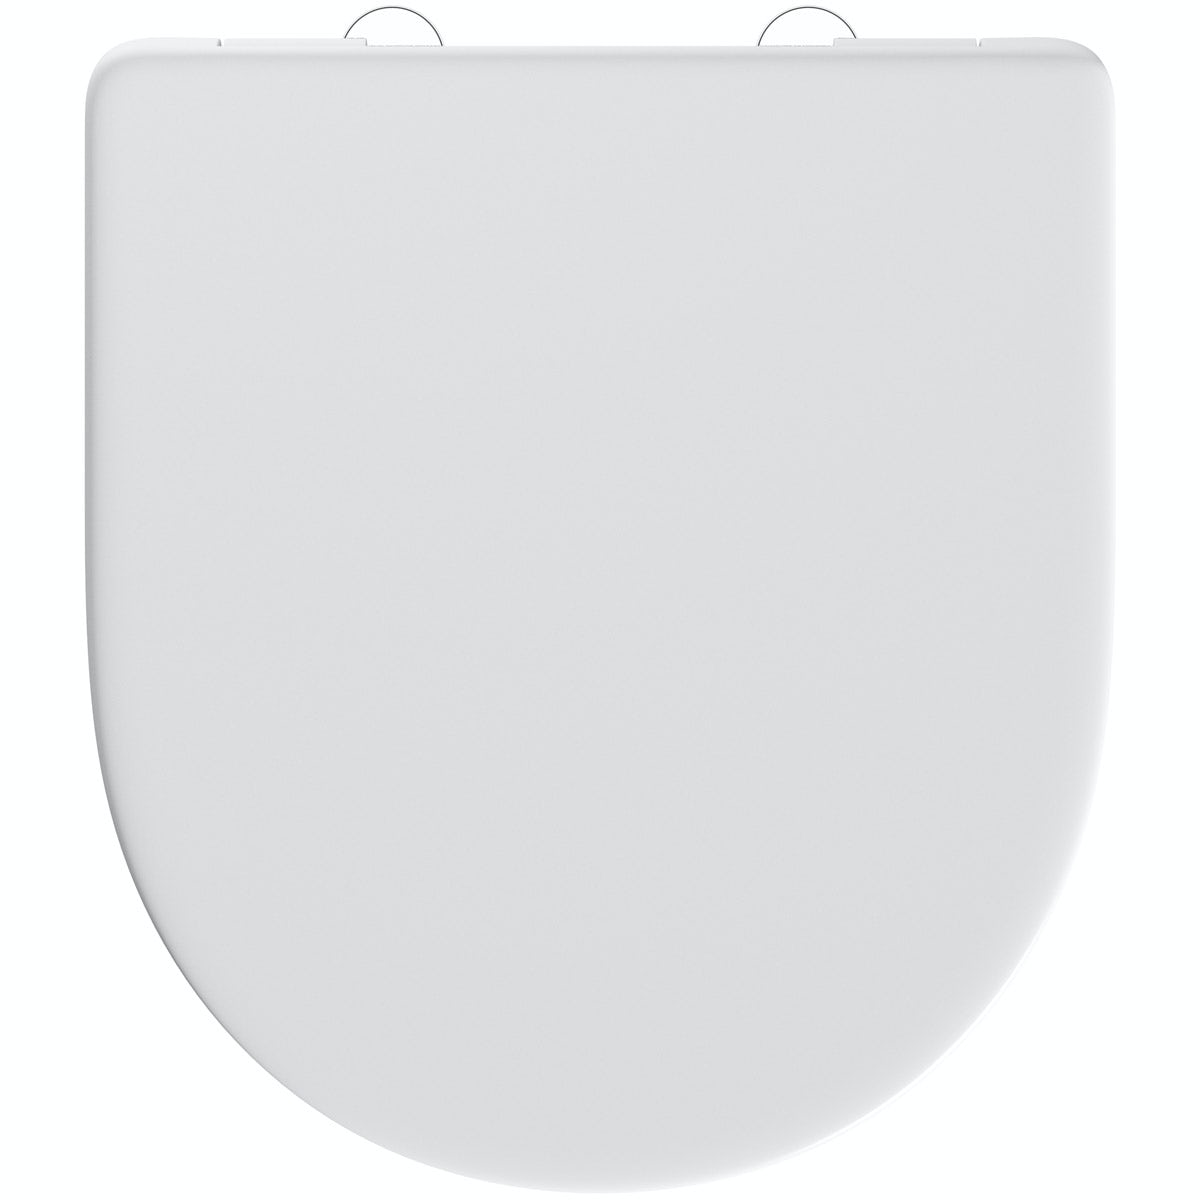 D shape thermoset top fix toilet seat with stainless steel soft close and lift off